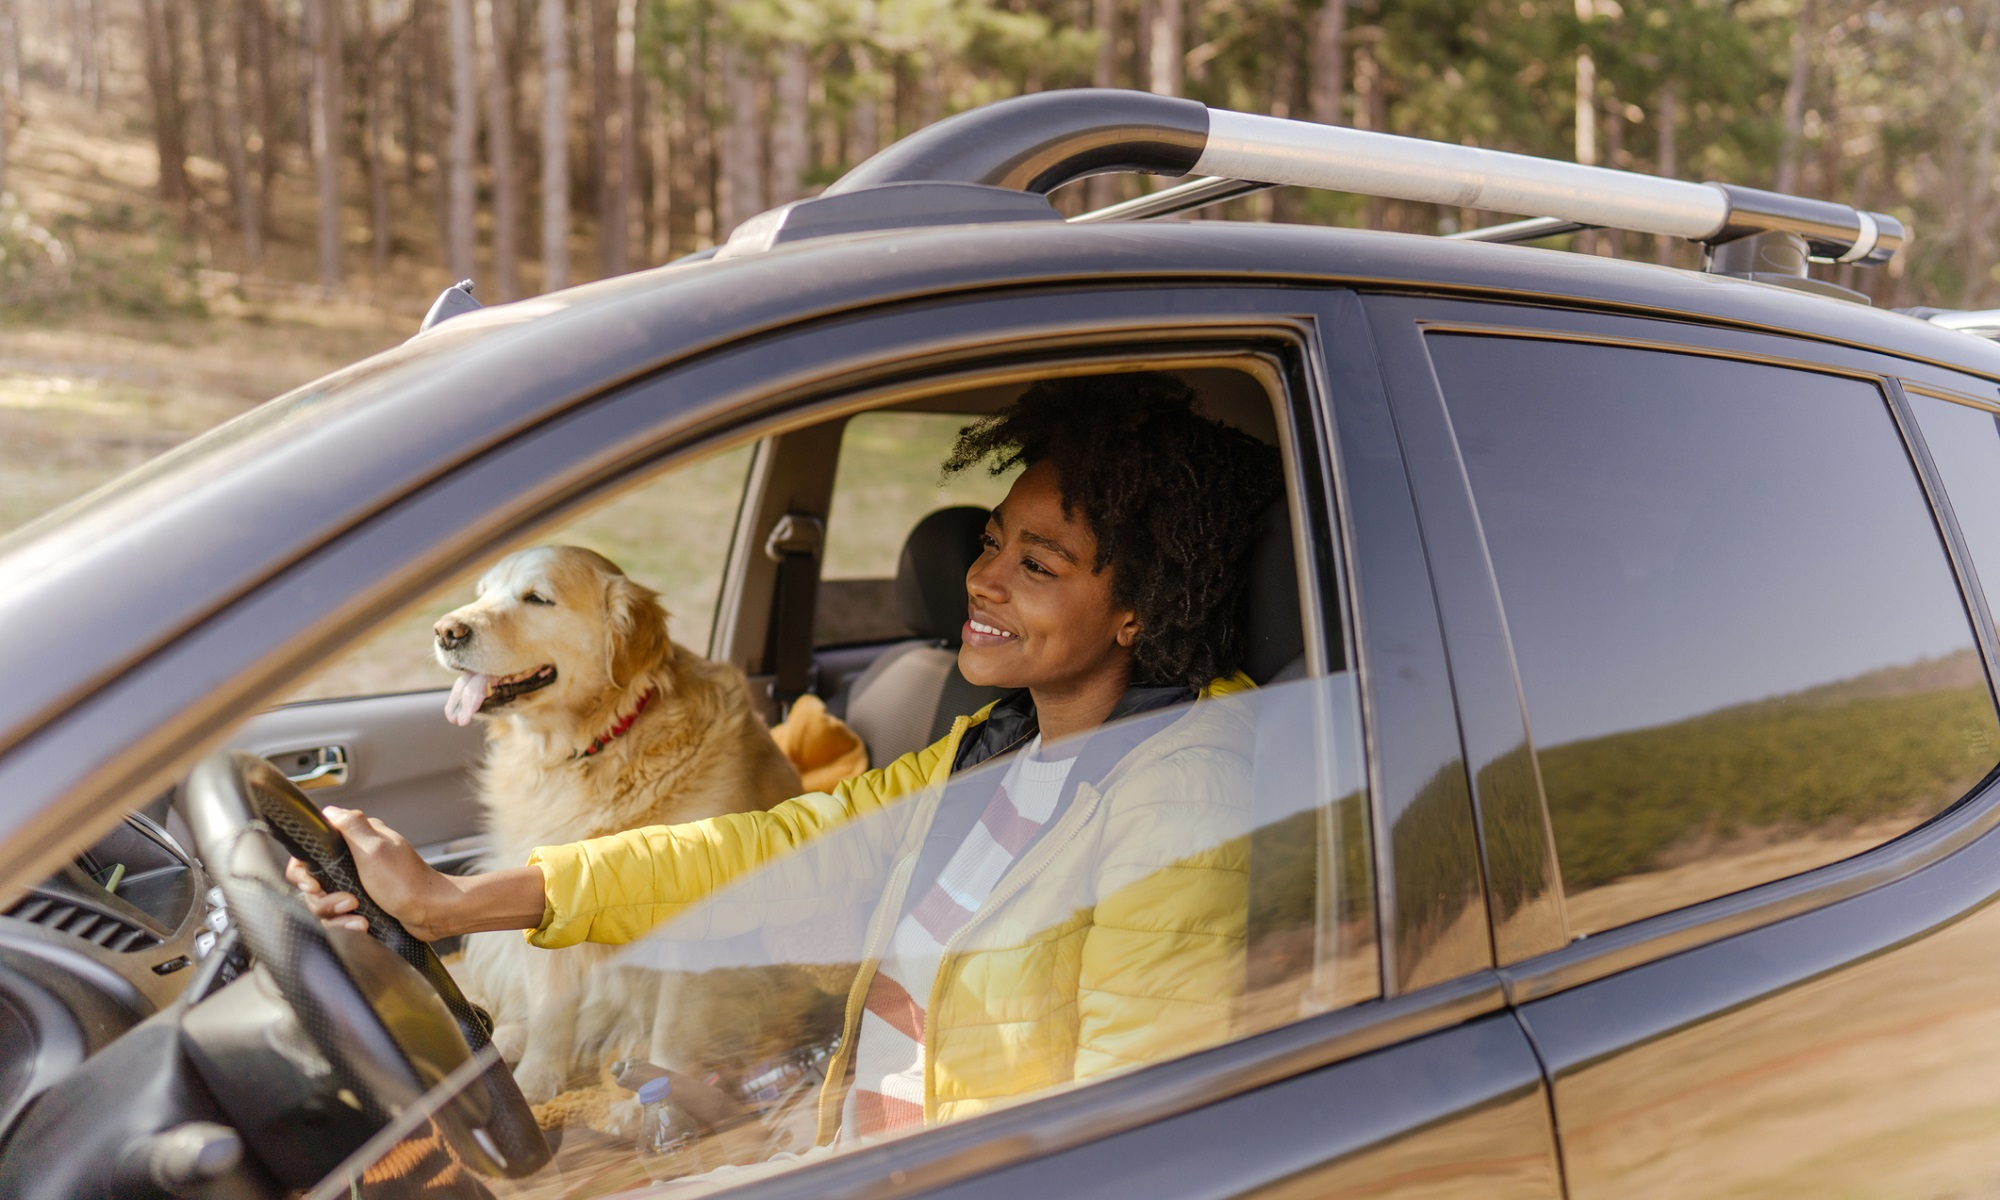 Photo of a young smiling woman driving a car. Her dog is sitting on a passenger seat